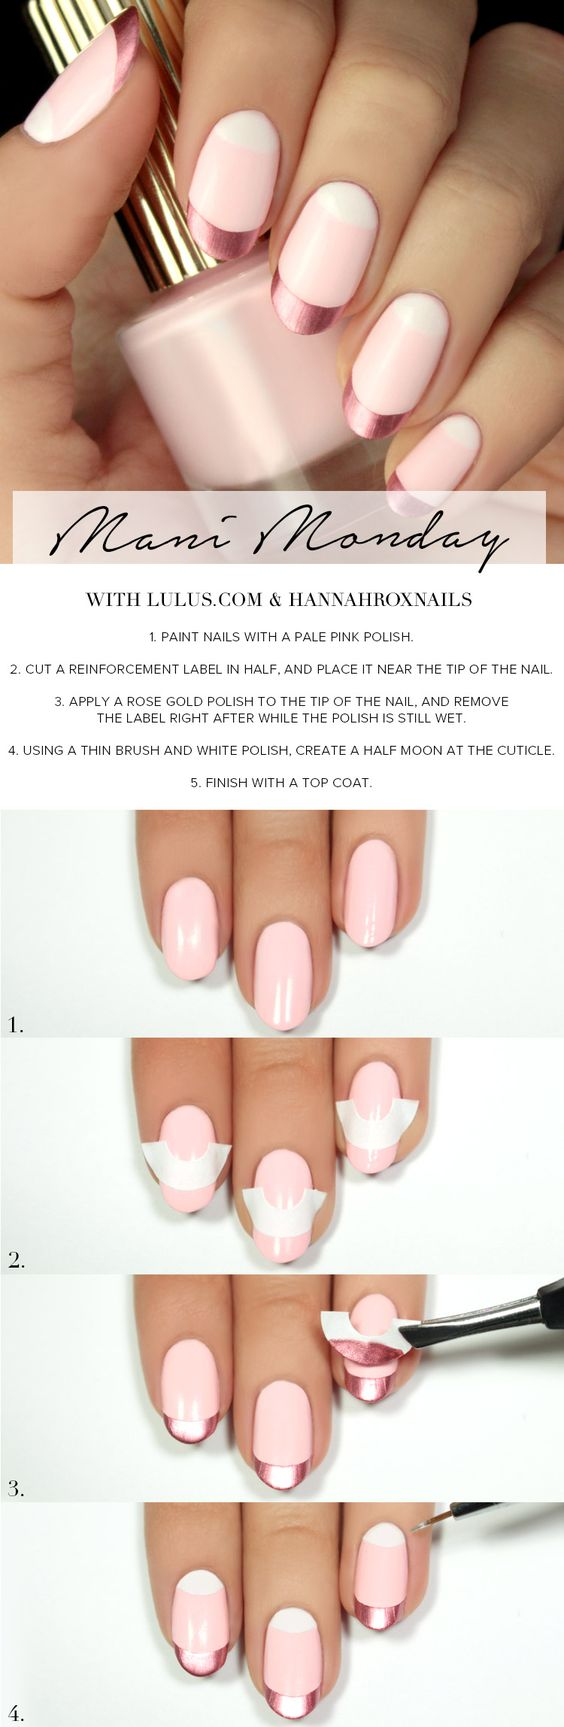 nail85 - 111 Nail Art Tutorials - Learn How To Do The Simple Ones To Intricate Details